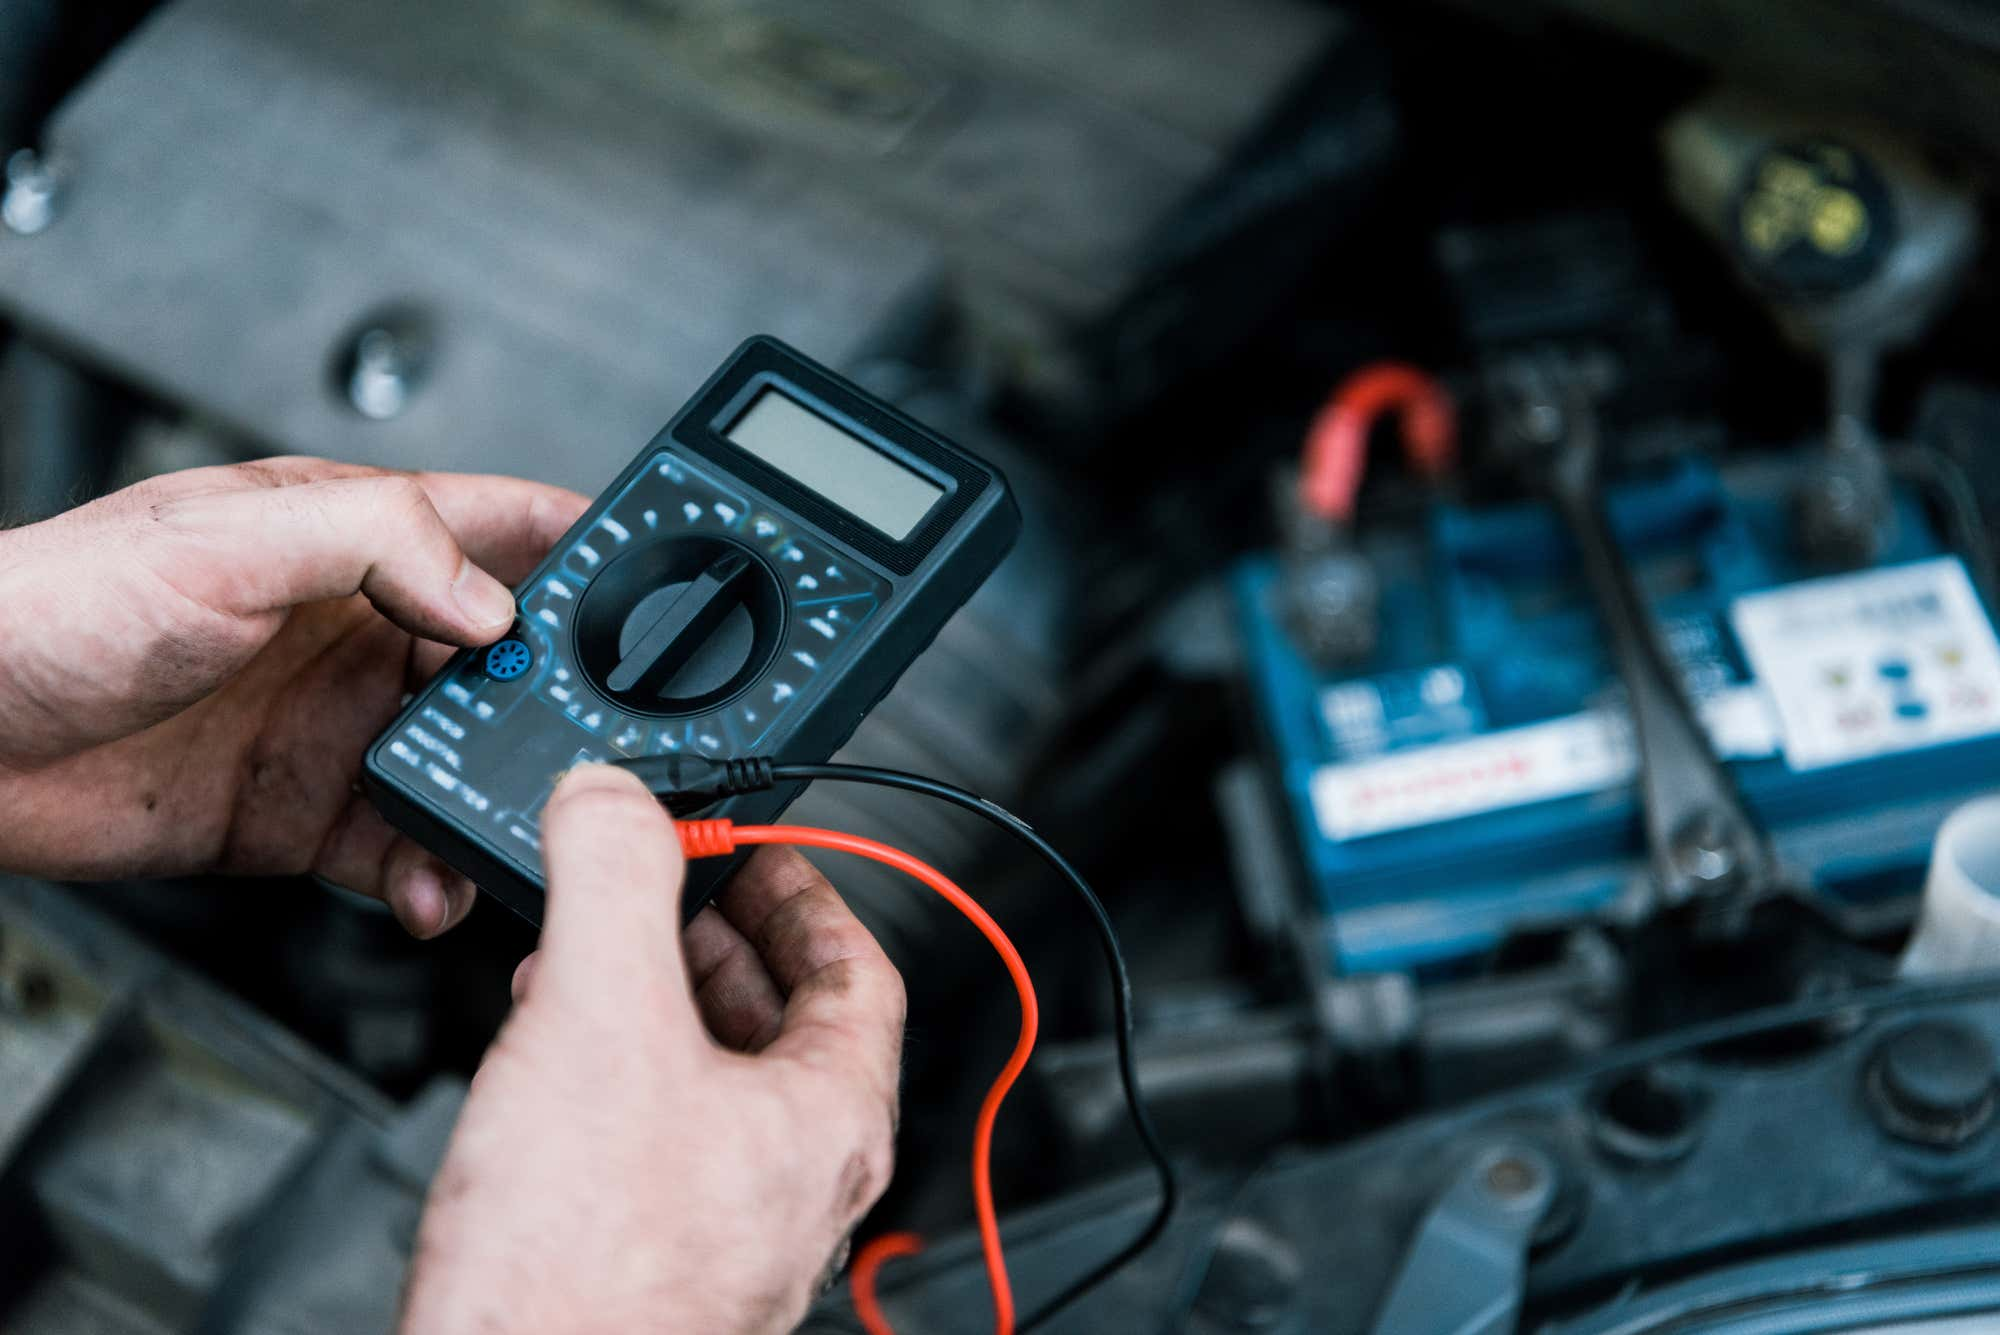 A mechanic testing a battery with a multimeter.